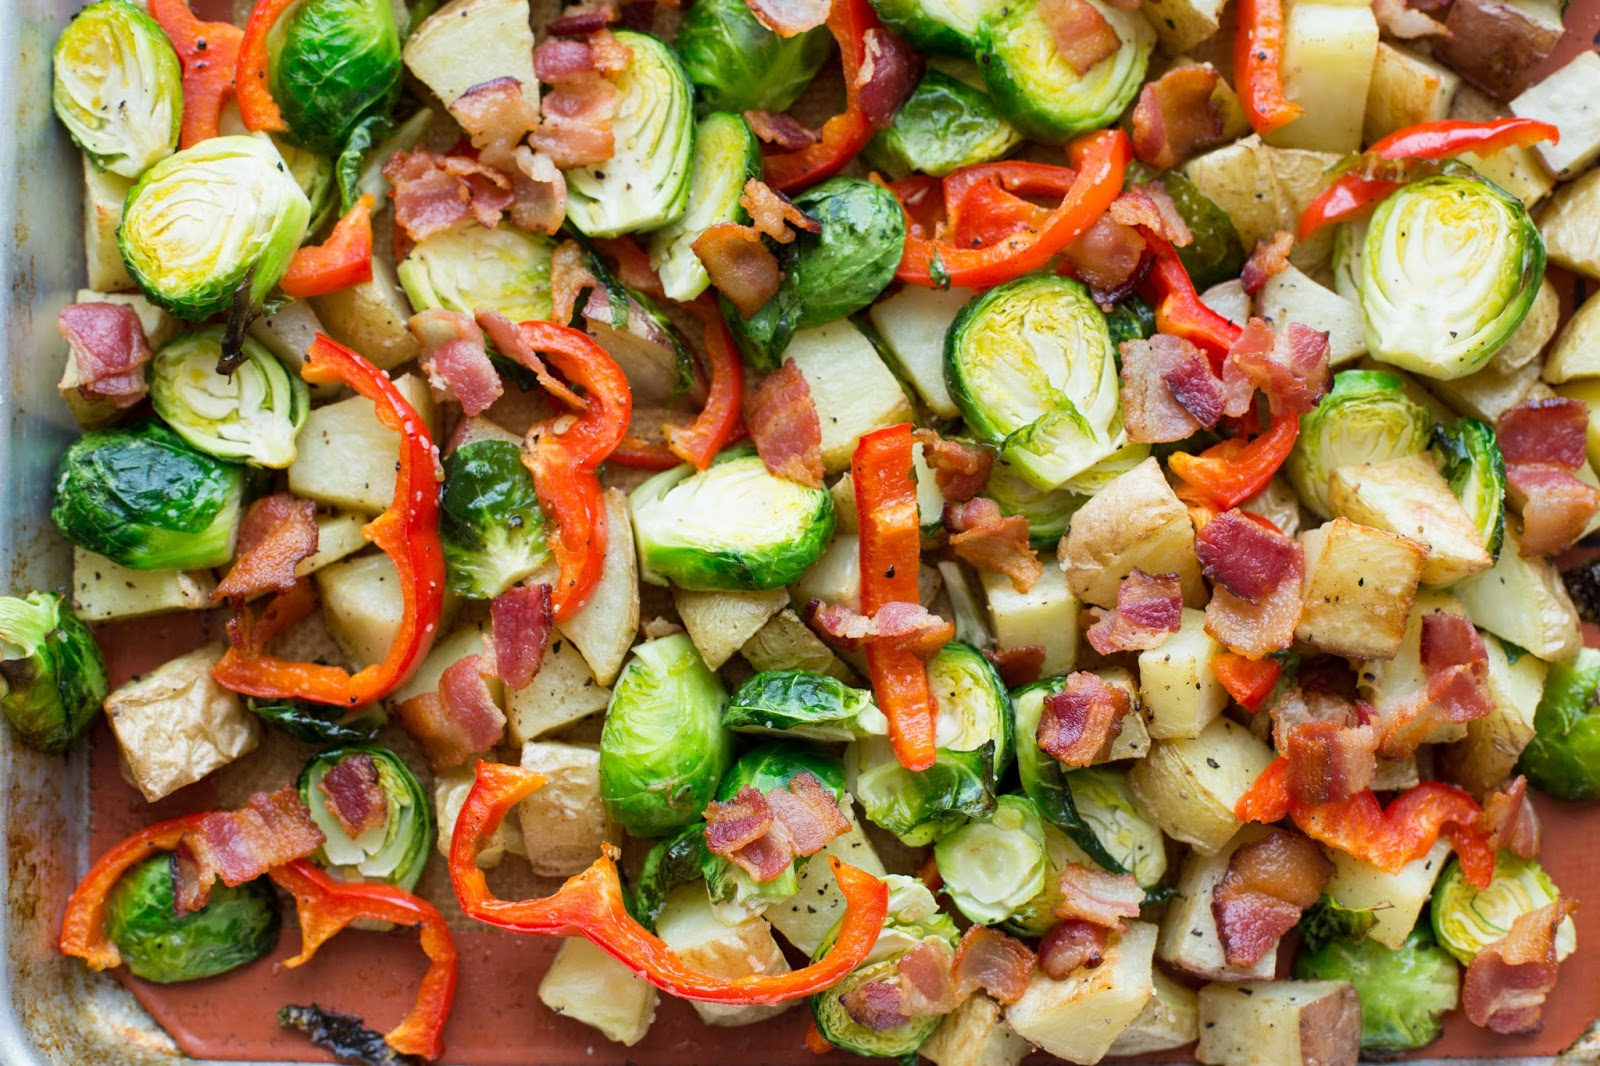 ... The Kitchen: Roasted Potatoes, Brussels Sprouts, Red Pepper and Bacon